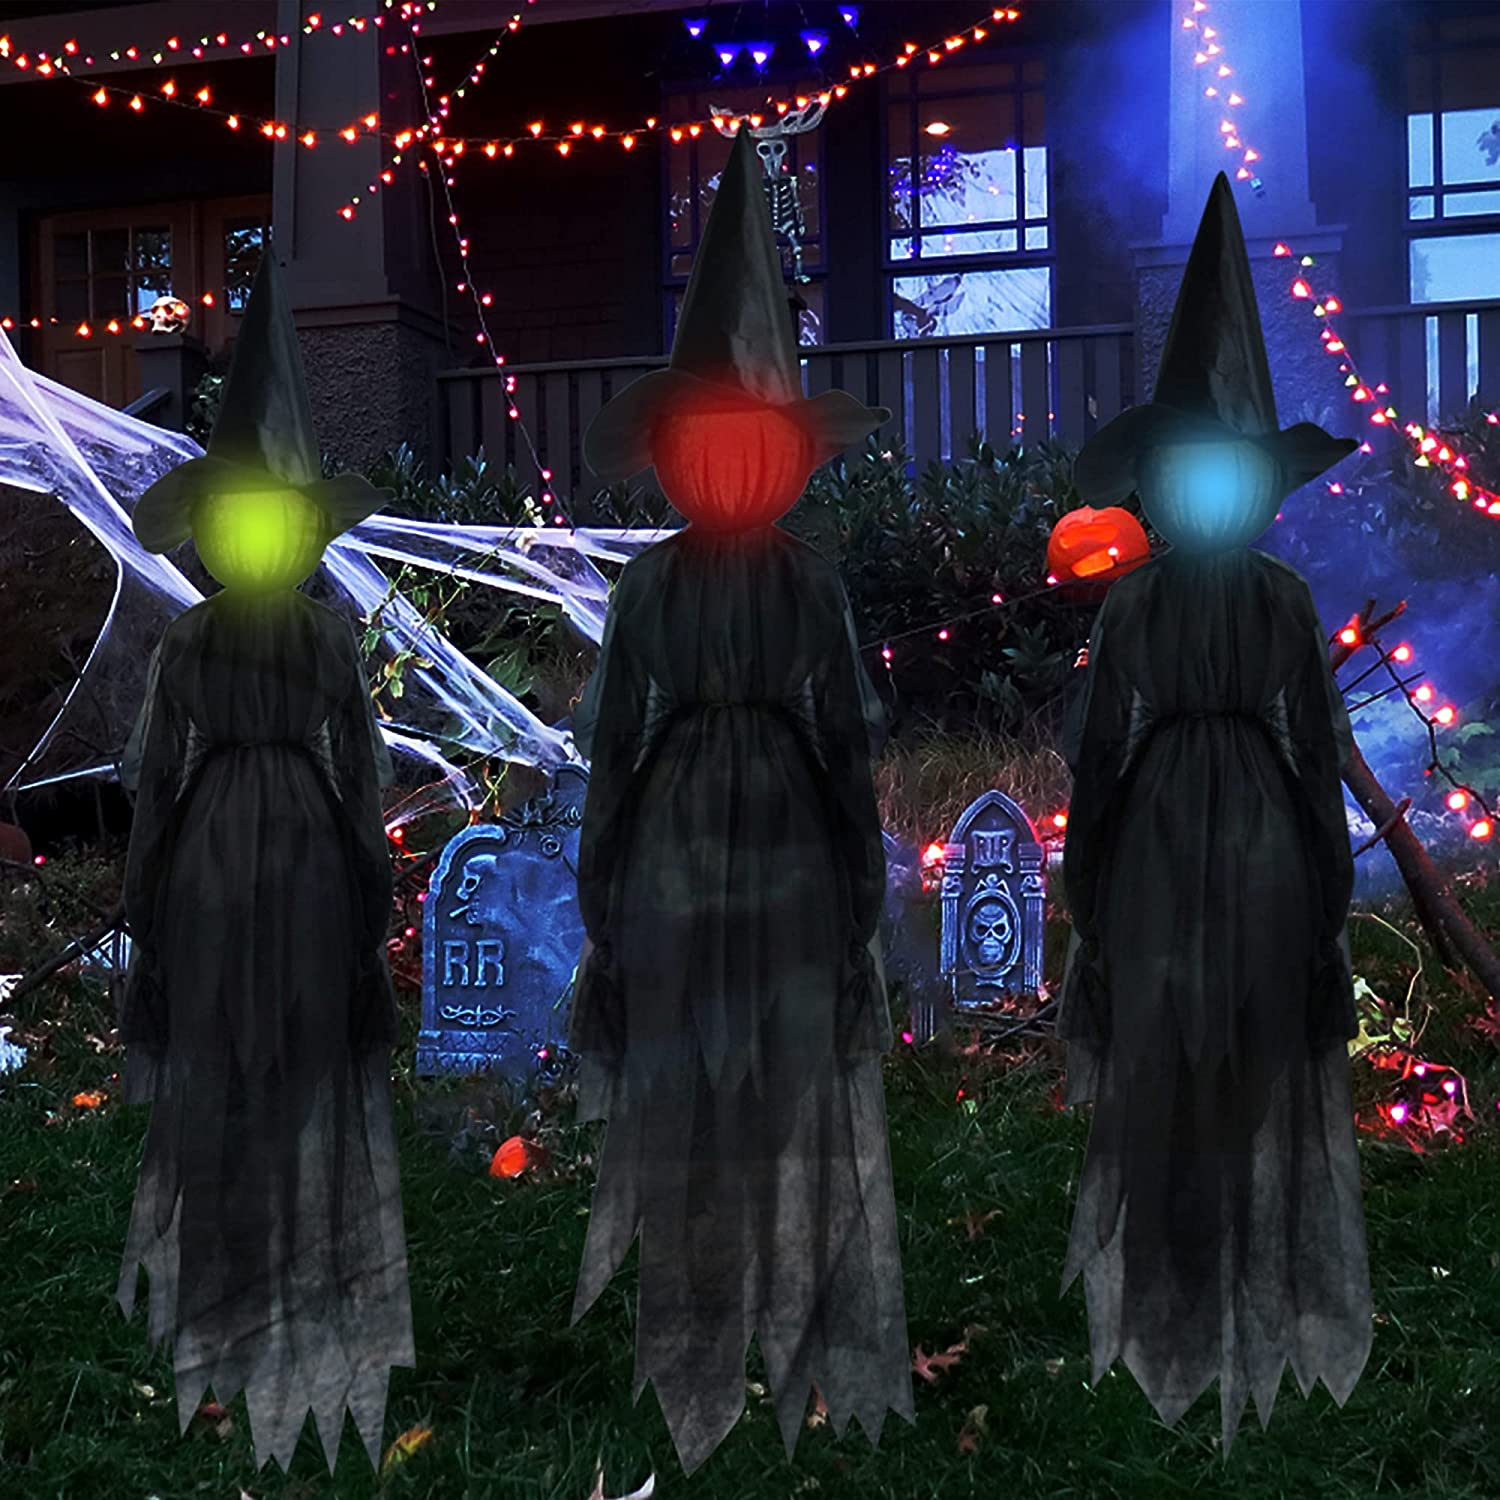 DR.DUDU Luxury goods Dallas Mall Halloween Decorations 6 Ft Set Mu Witch with of Stakes 3